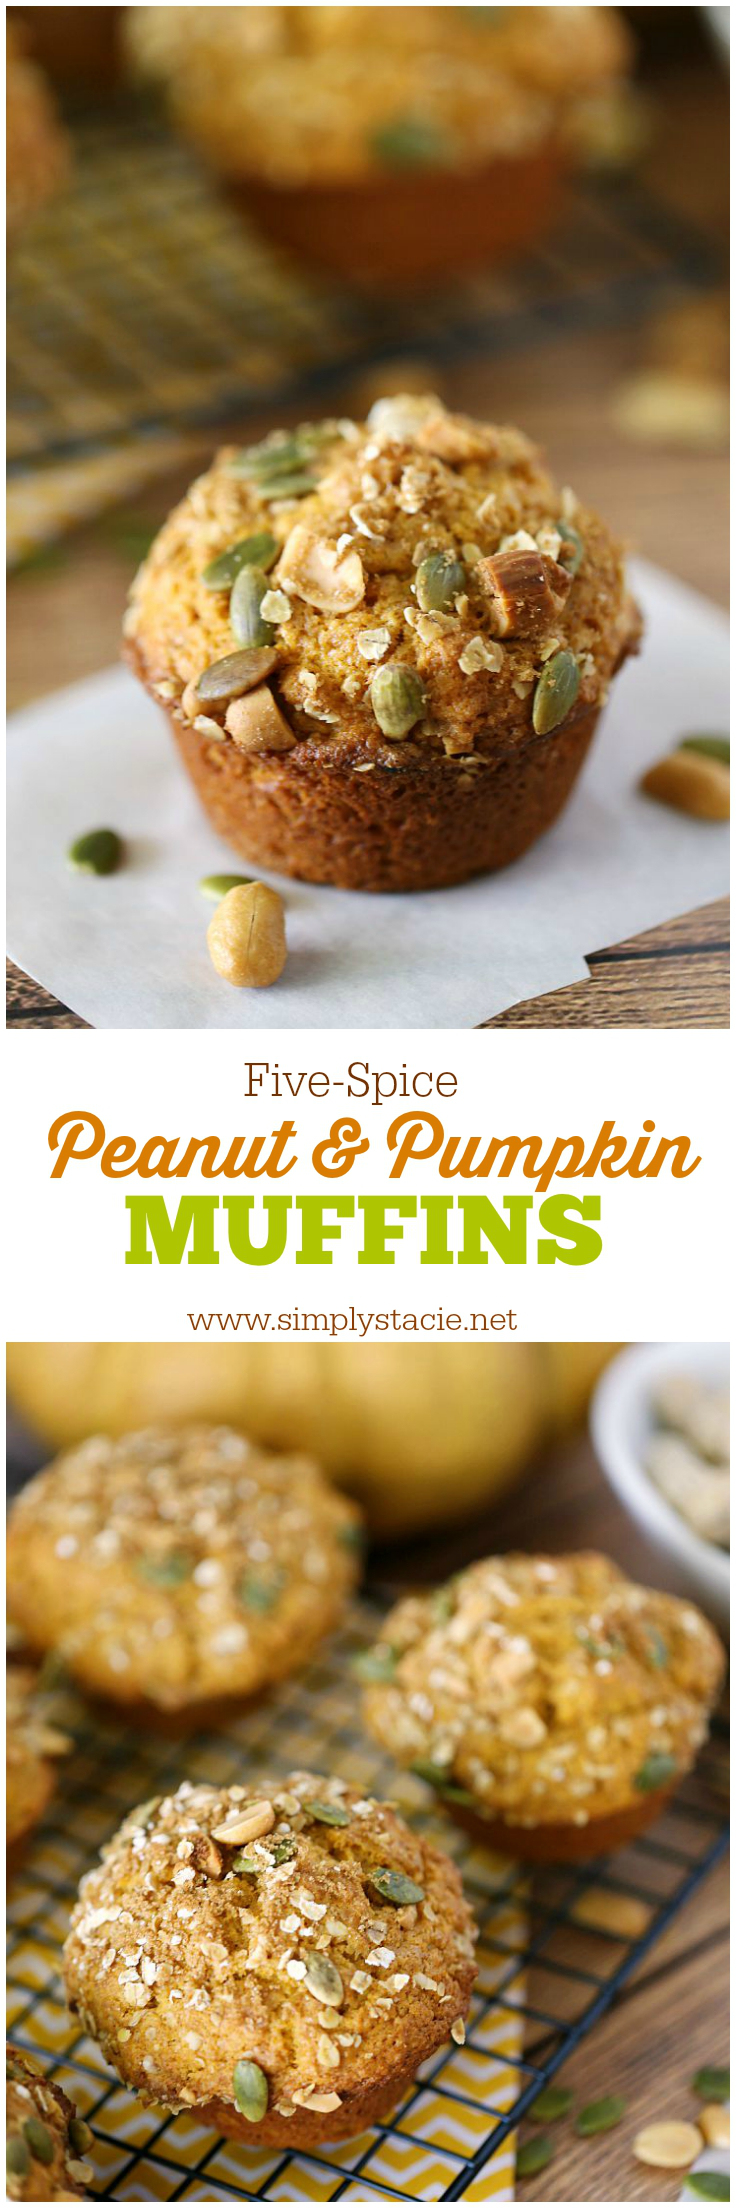 Five-Spice Peanut & Pumpkin Muffins - Incredibly moist and delicious, Five-Spice Peanut & Pumpkin Muffins are easy to make and perfect for fall.